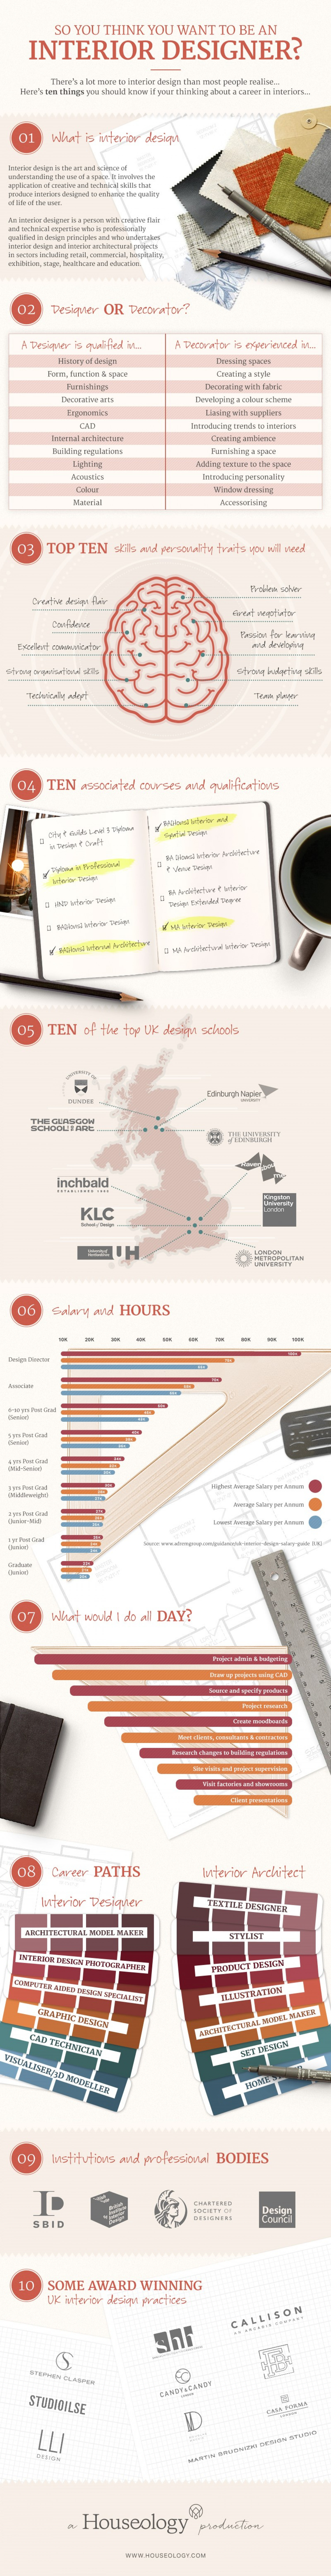 What is an interior designer Infographic